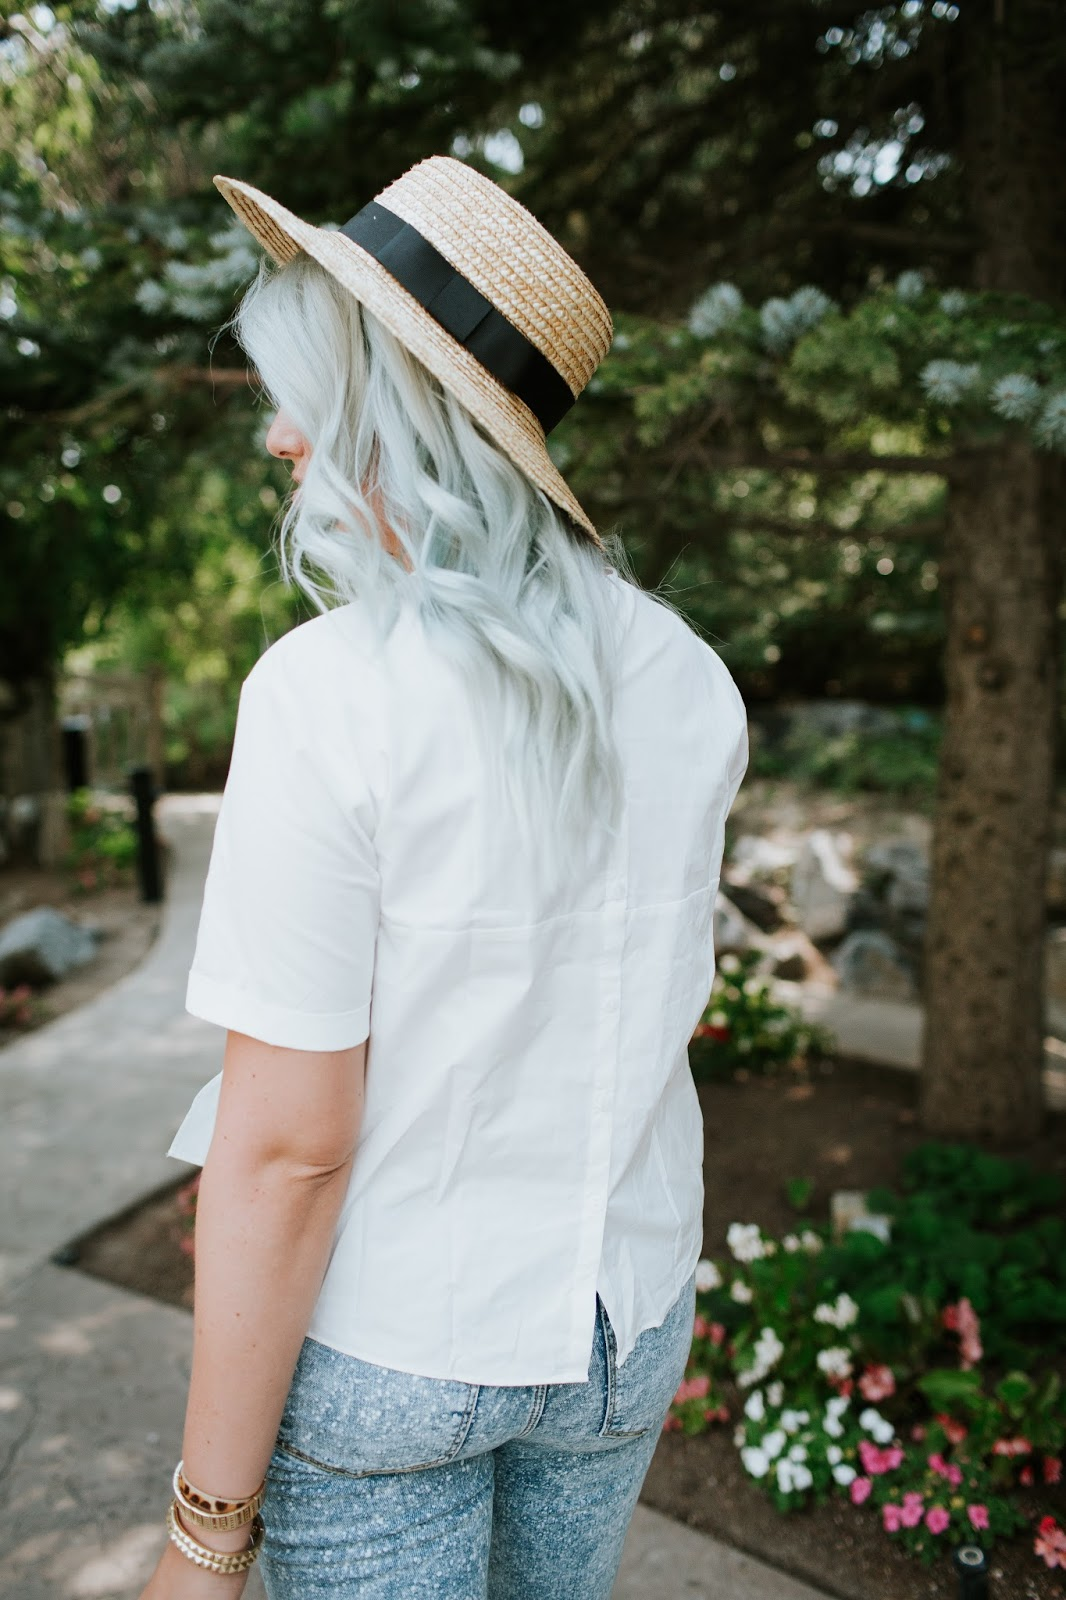 Blue Hair, White Shirt, Details